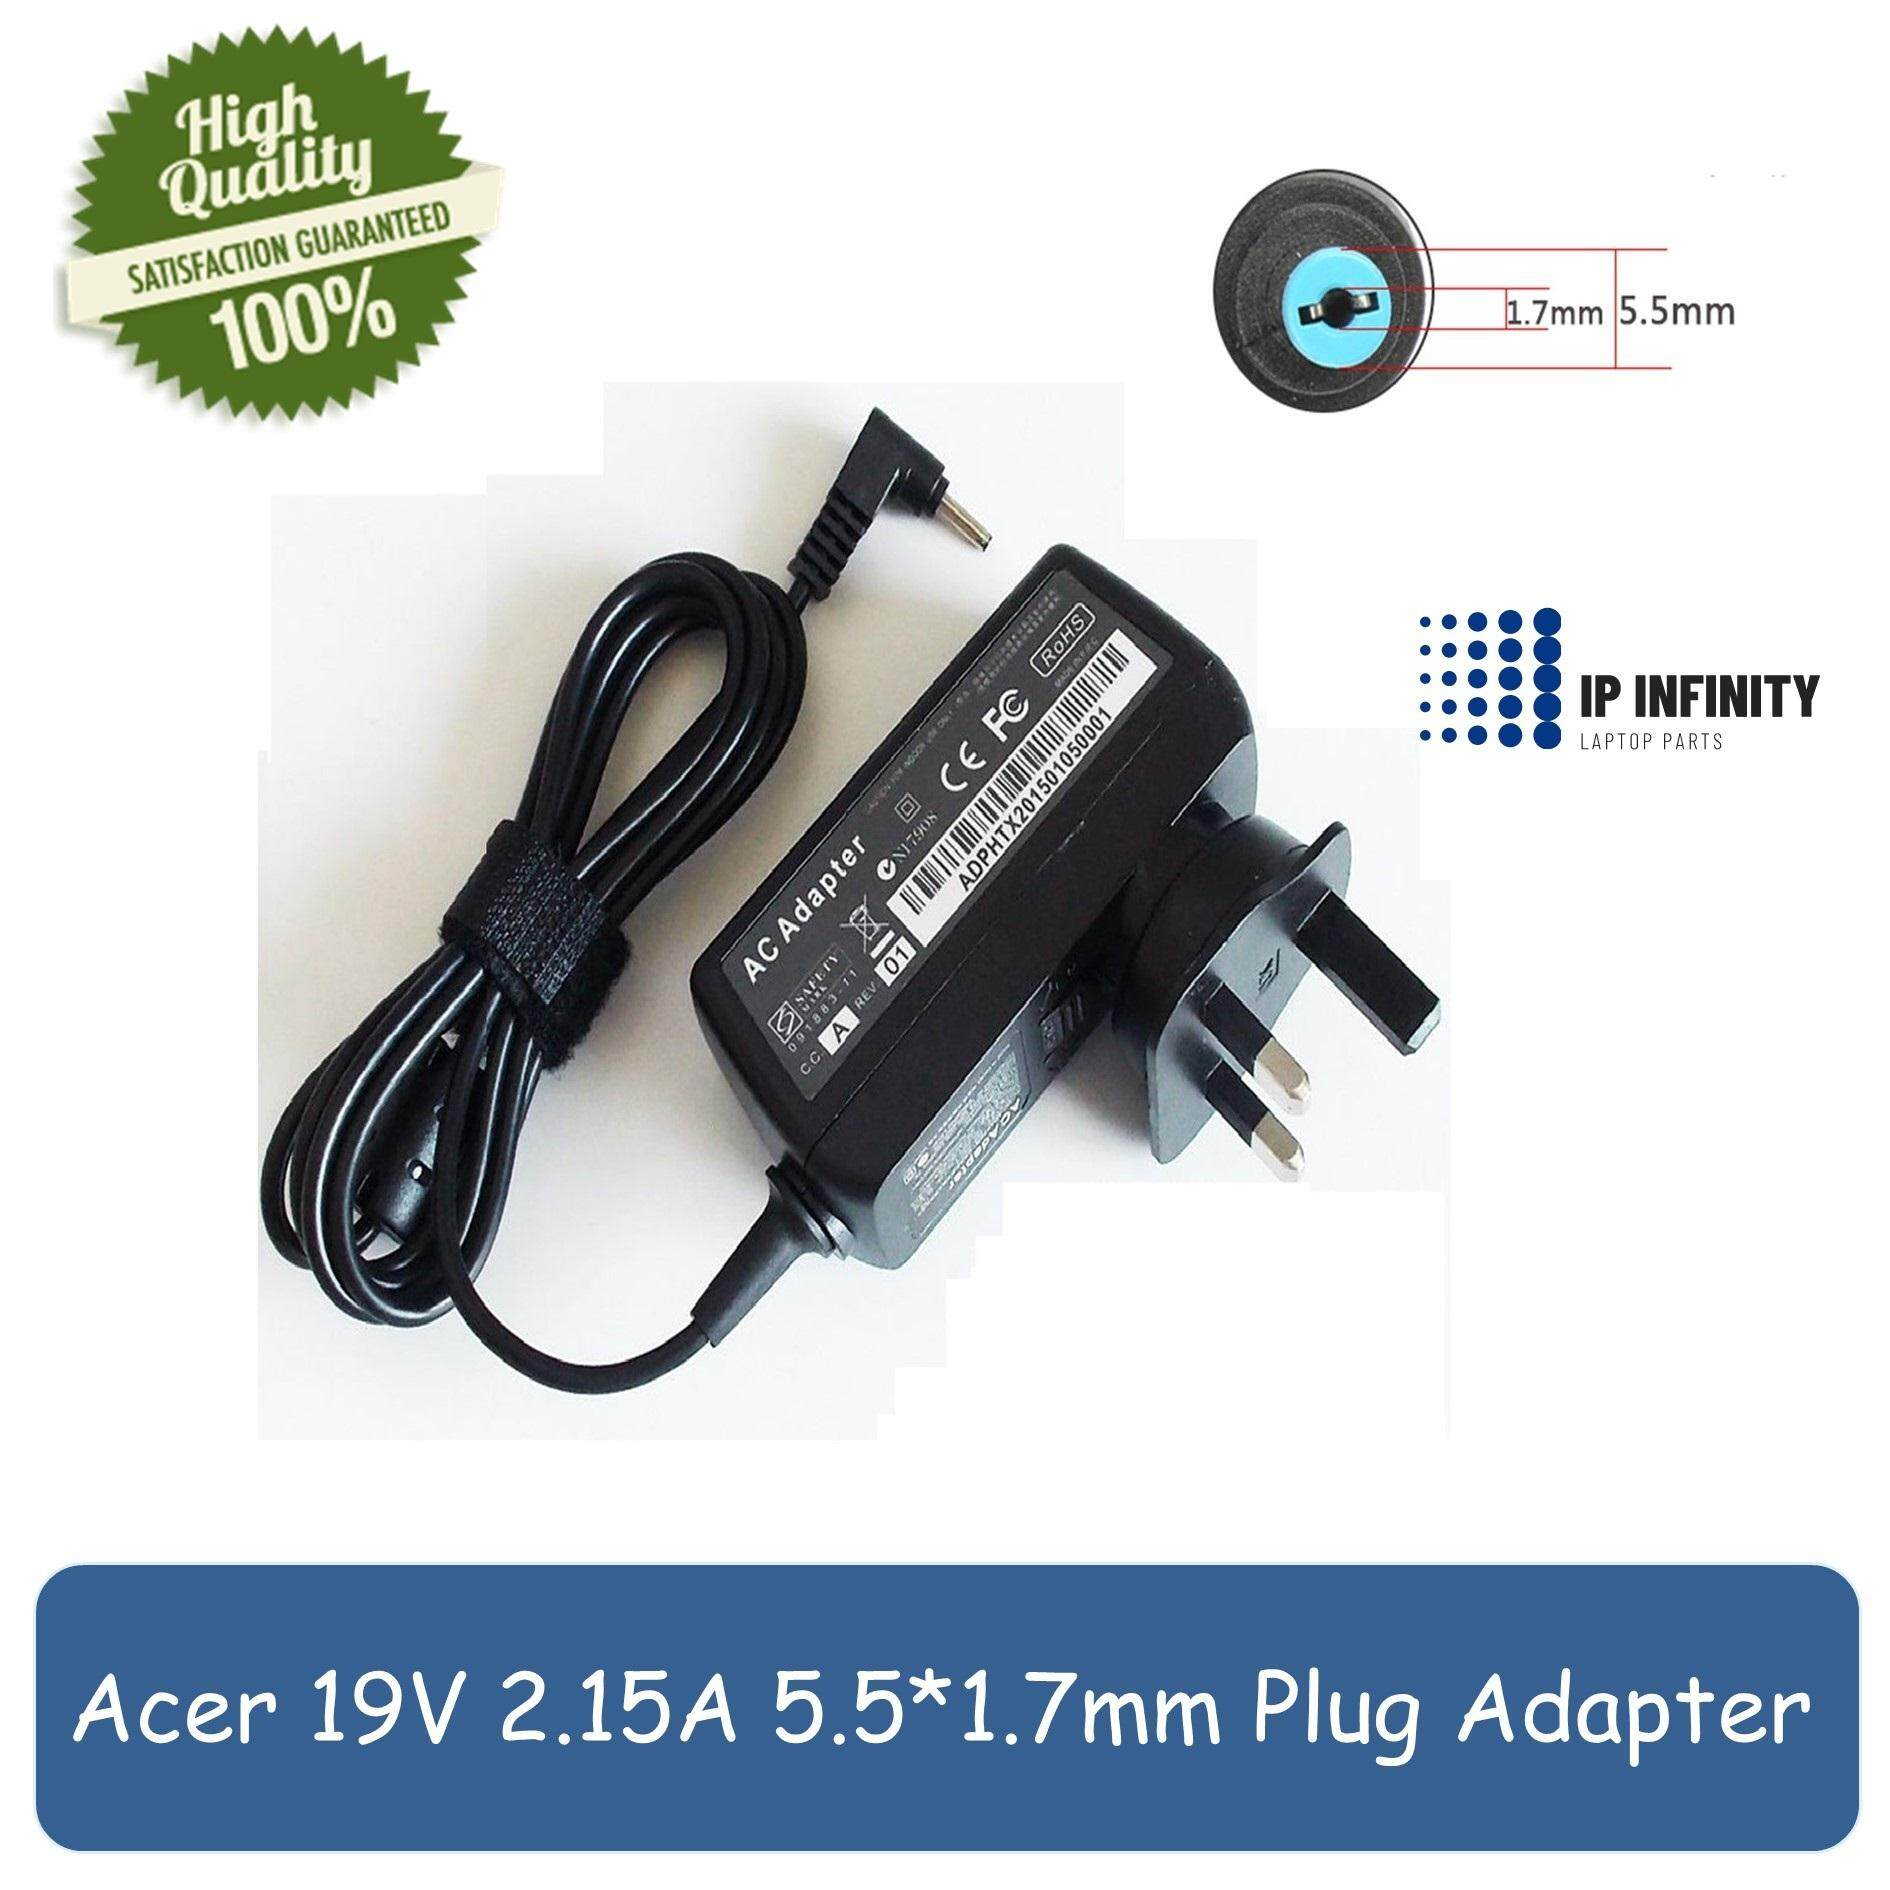 Sell Acer Et241ybi Cheapest Best Quality My Store Adaptor Charger Laptop Aspire 4739 4738 4741 4750 4736 4752 4740 Replacement One D270 Batterymyr65 Myr 69